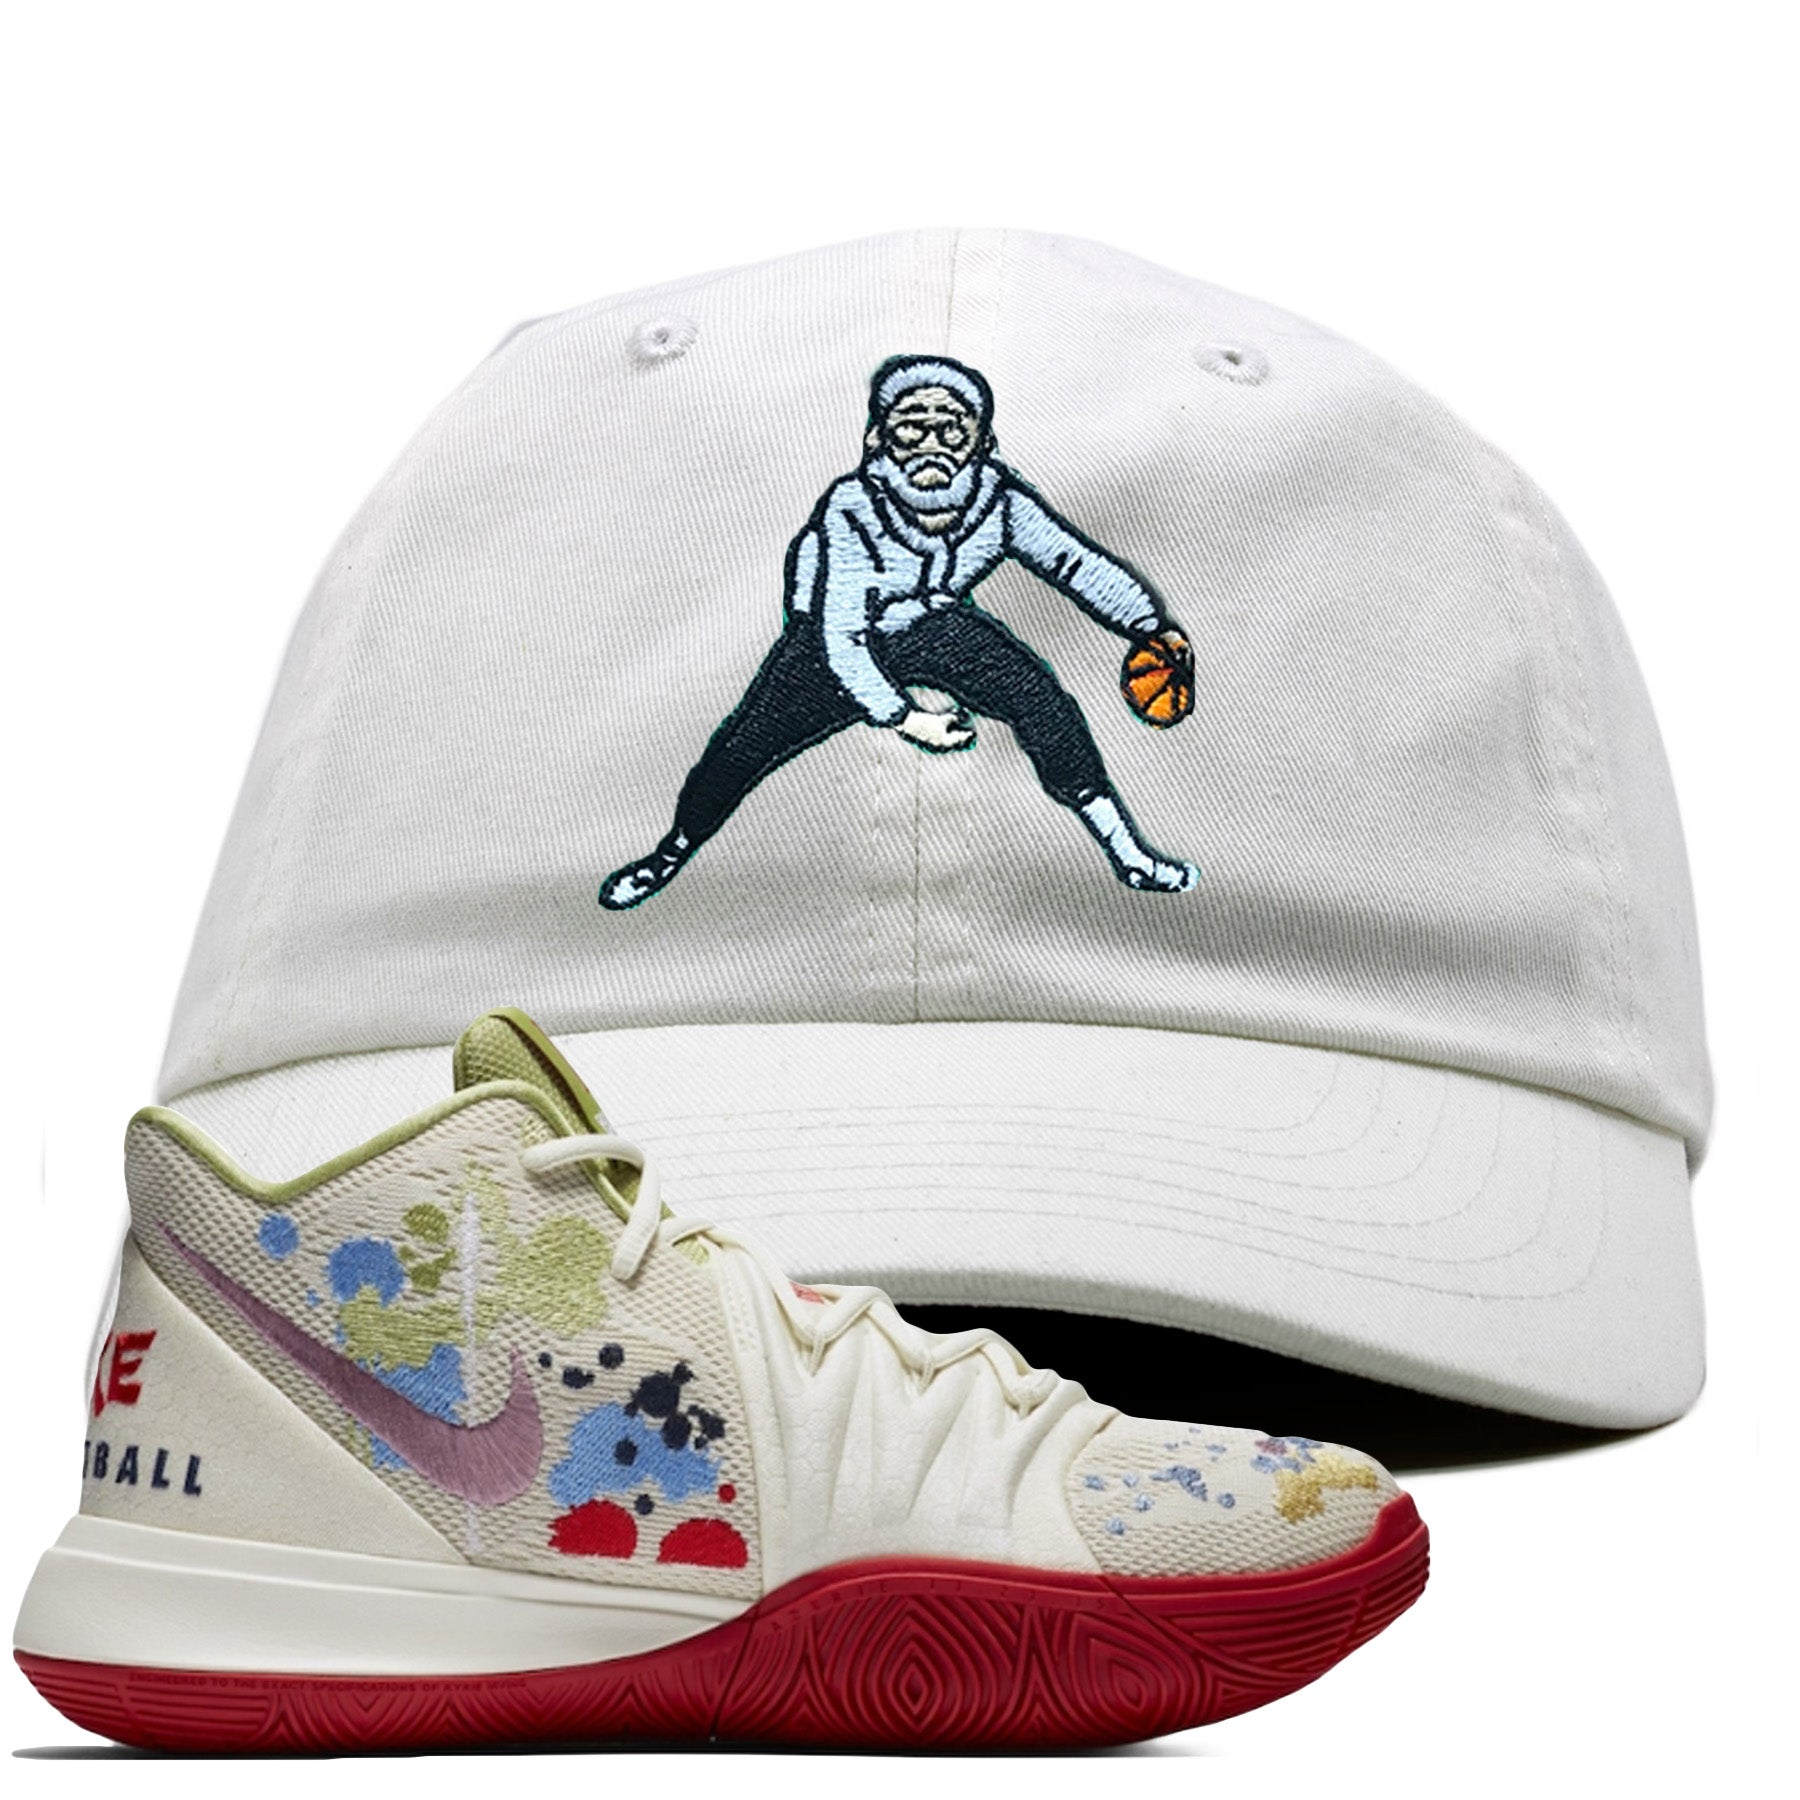 online store 2cdab 16531 Bandulu x Nike Kyrie 5 Sneaker Match Uncle Drew White Dad Hat